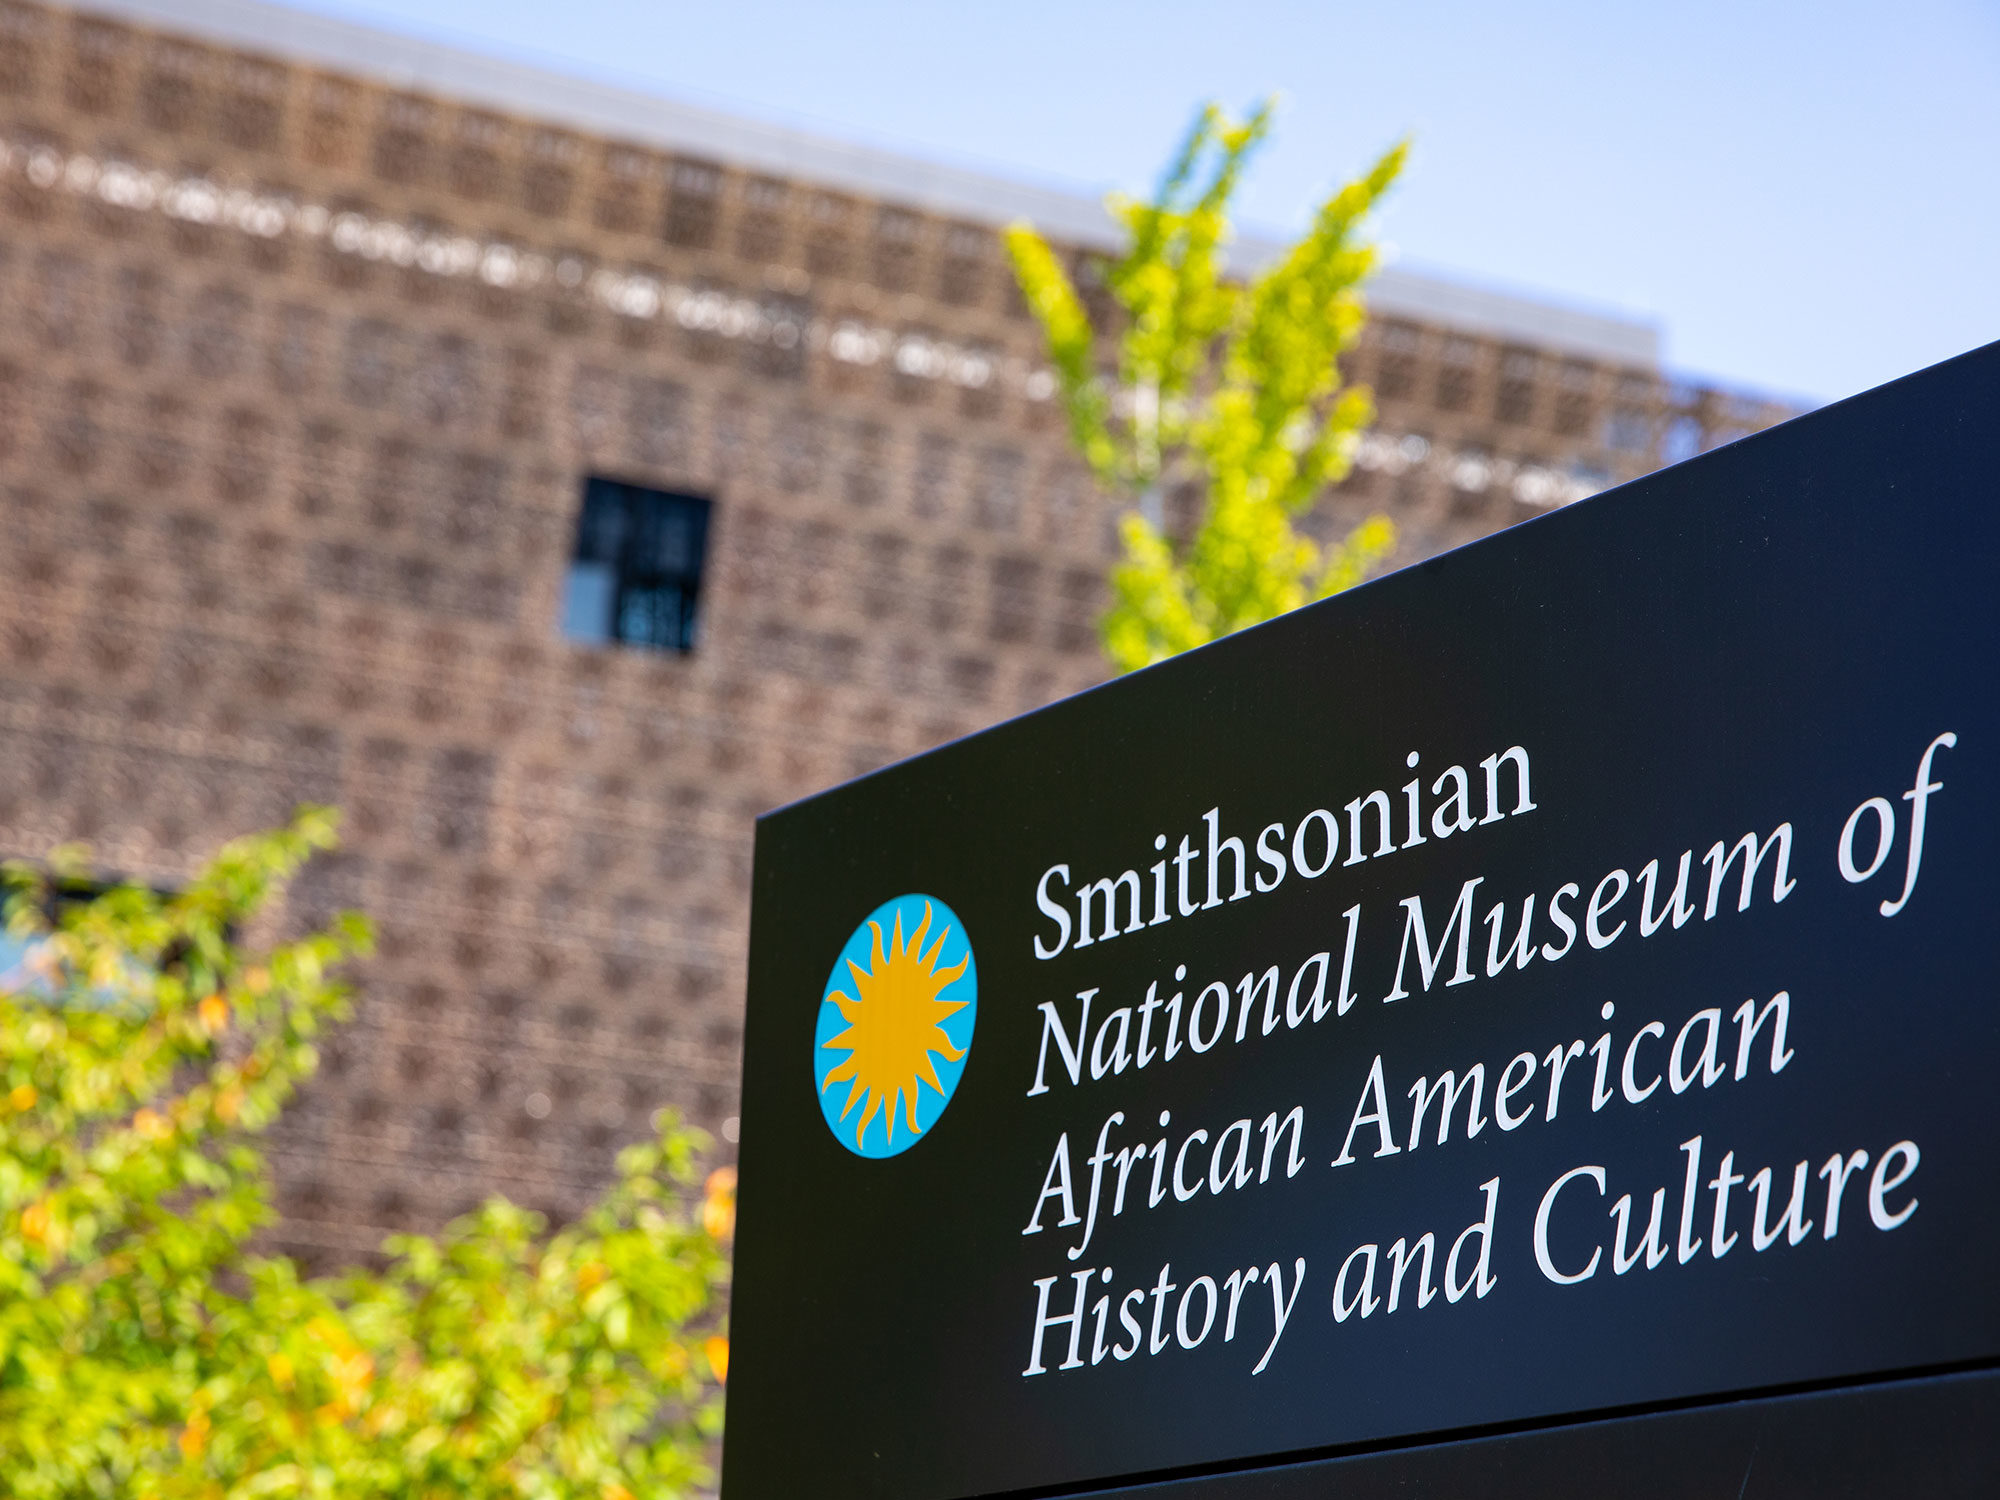 Sign in front of the National Museum of African American History and Culture